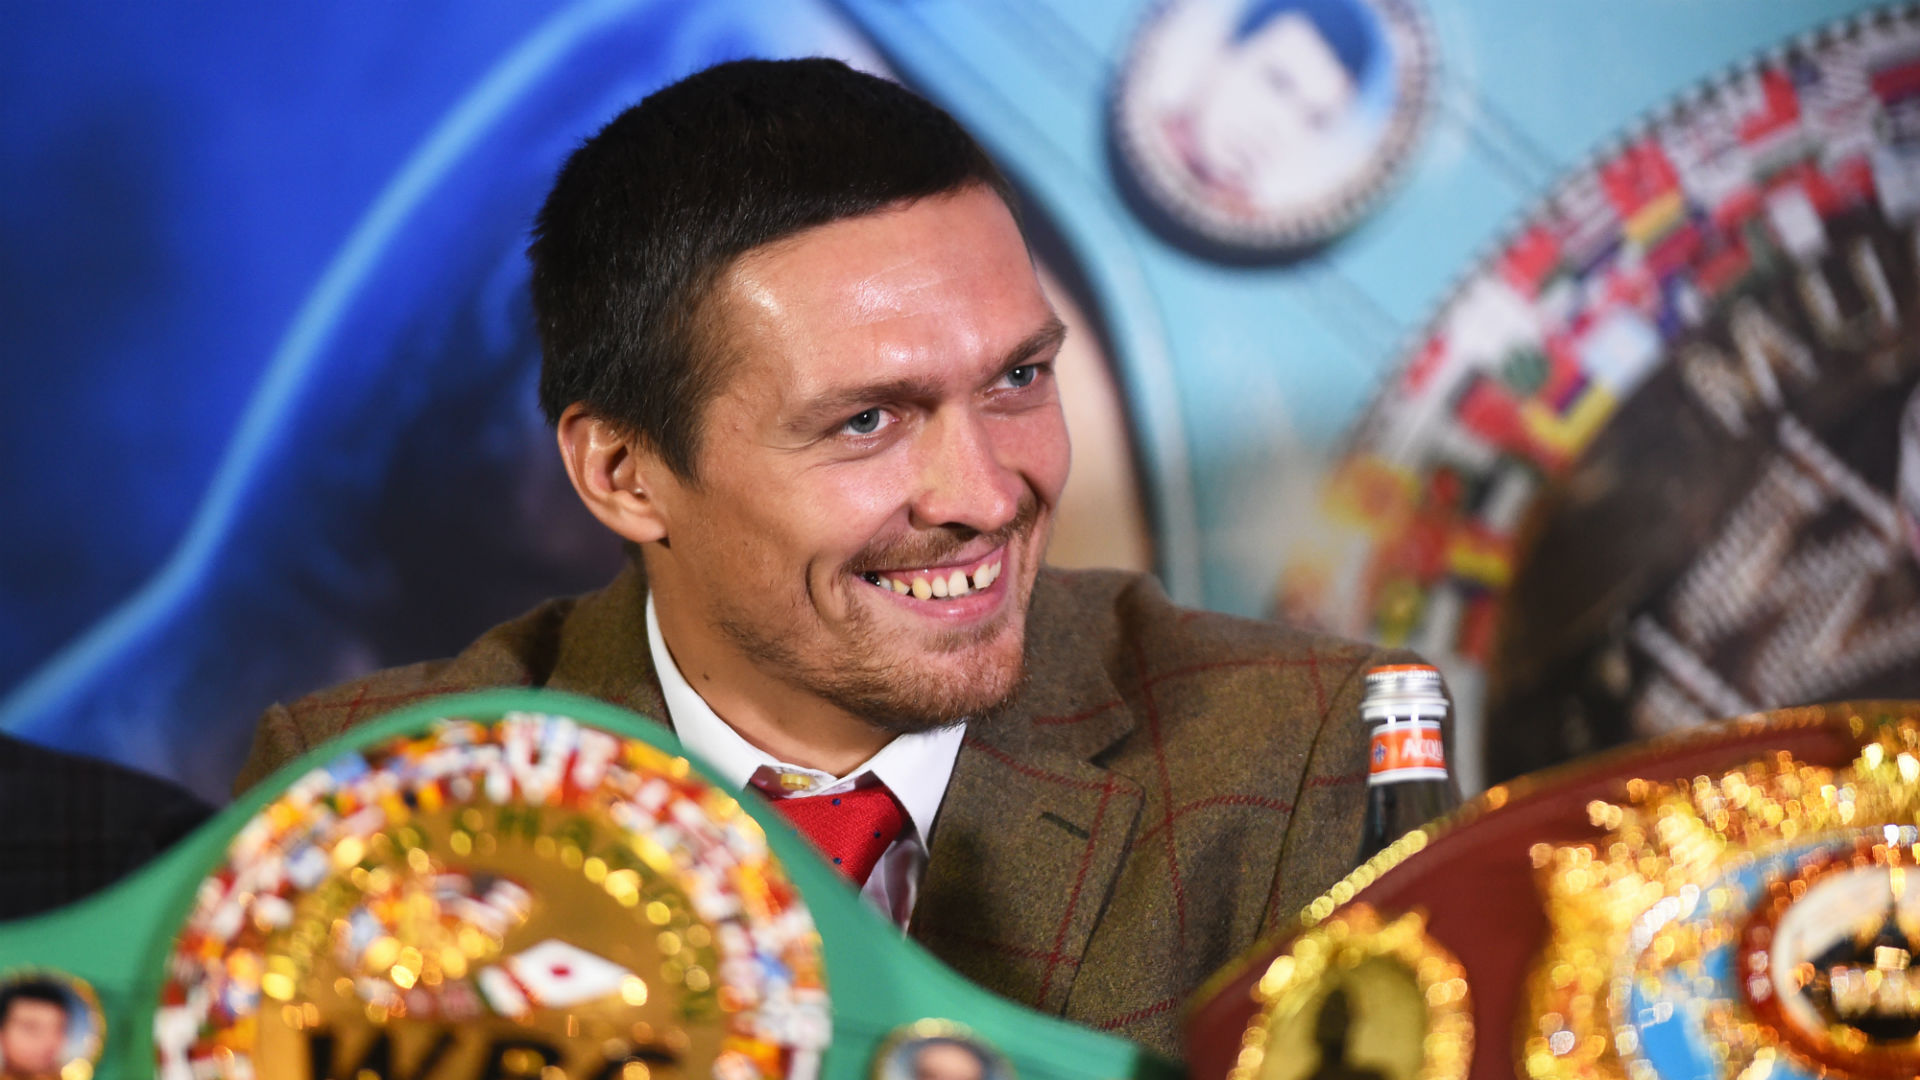 Who is Oleksandr Usyk, the unknown, unbeaten, undisputed champ?